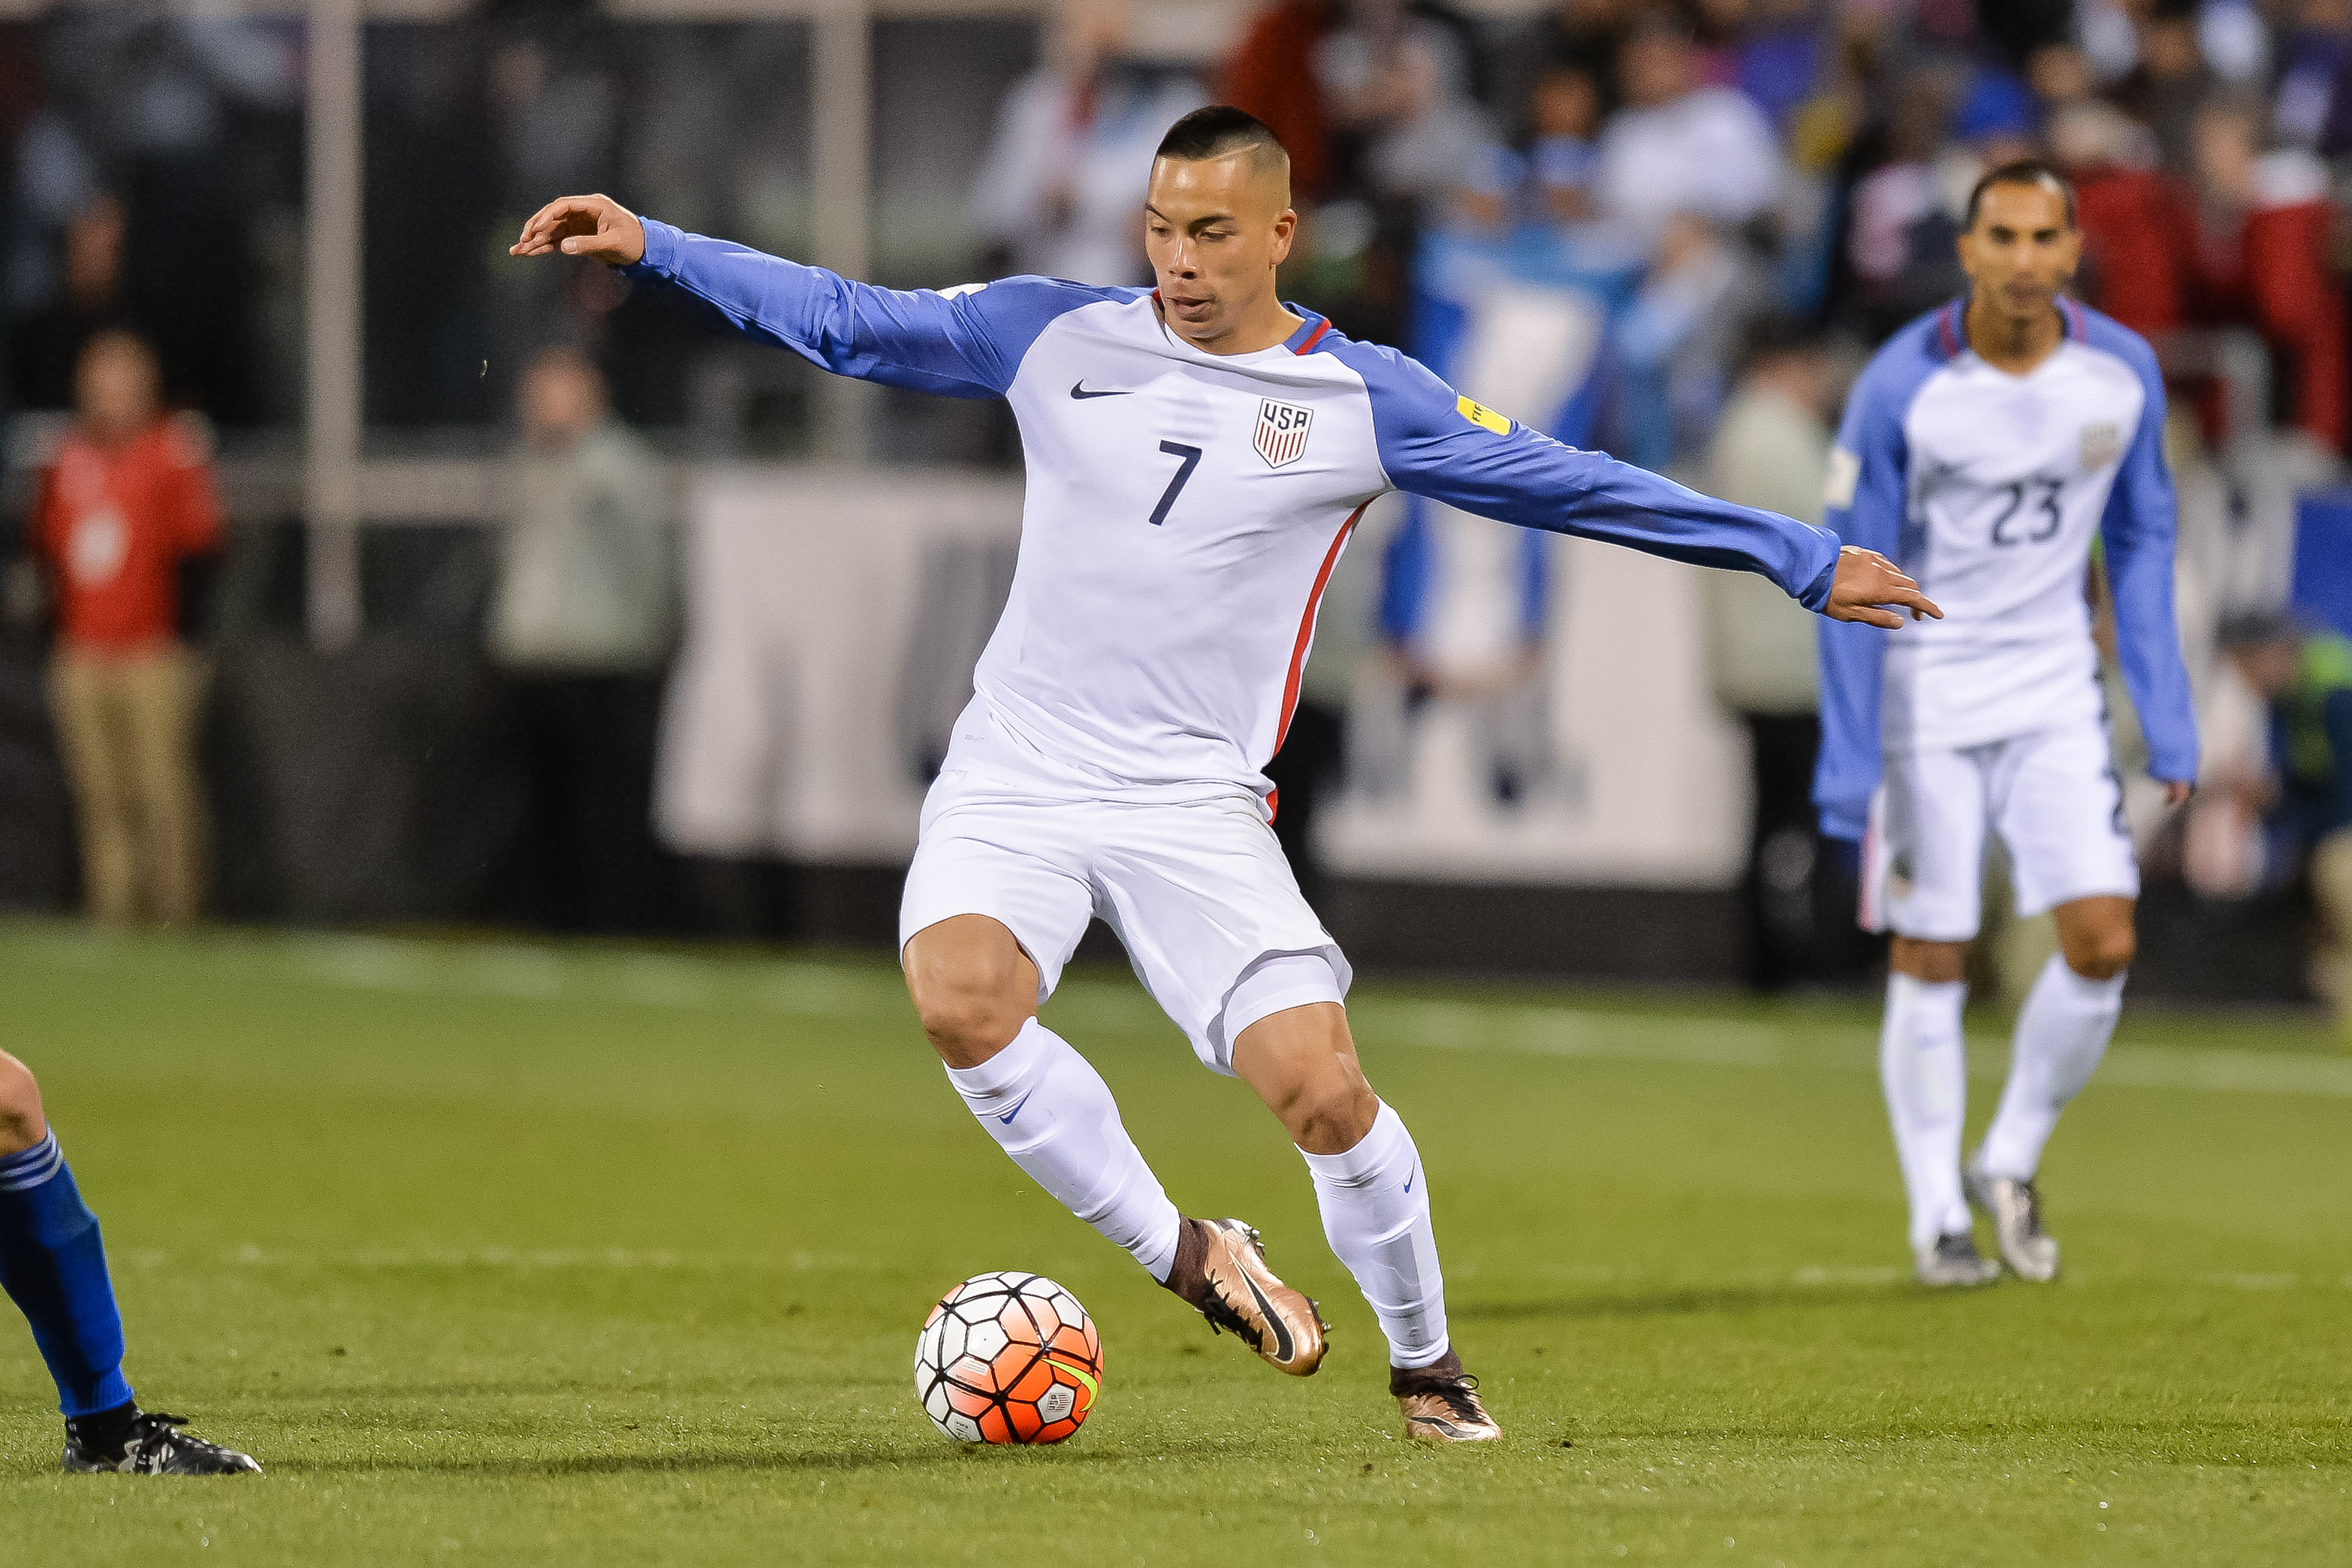 COLUMBUS, OH - MARCH 29:  Bobby Wood #7 of the United States Men's National Team controls the ball against Guatemala during the FIFA 2018  World Cup qualifier on March 29, 2016 at MAPFRE Stadium in Columbus, Ohio. The United States defeated Guatemala 4-0.  (Photo by Jamie Sabau/Getty Images)